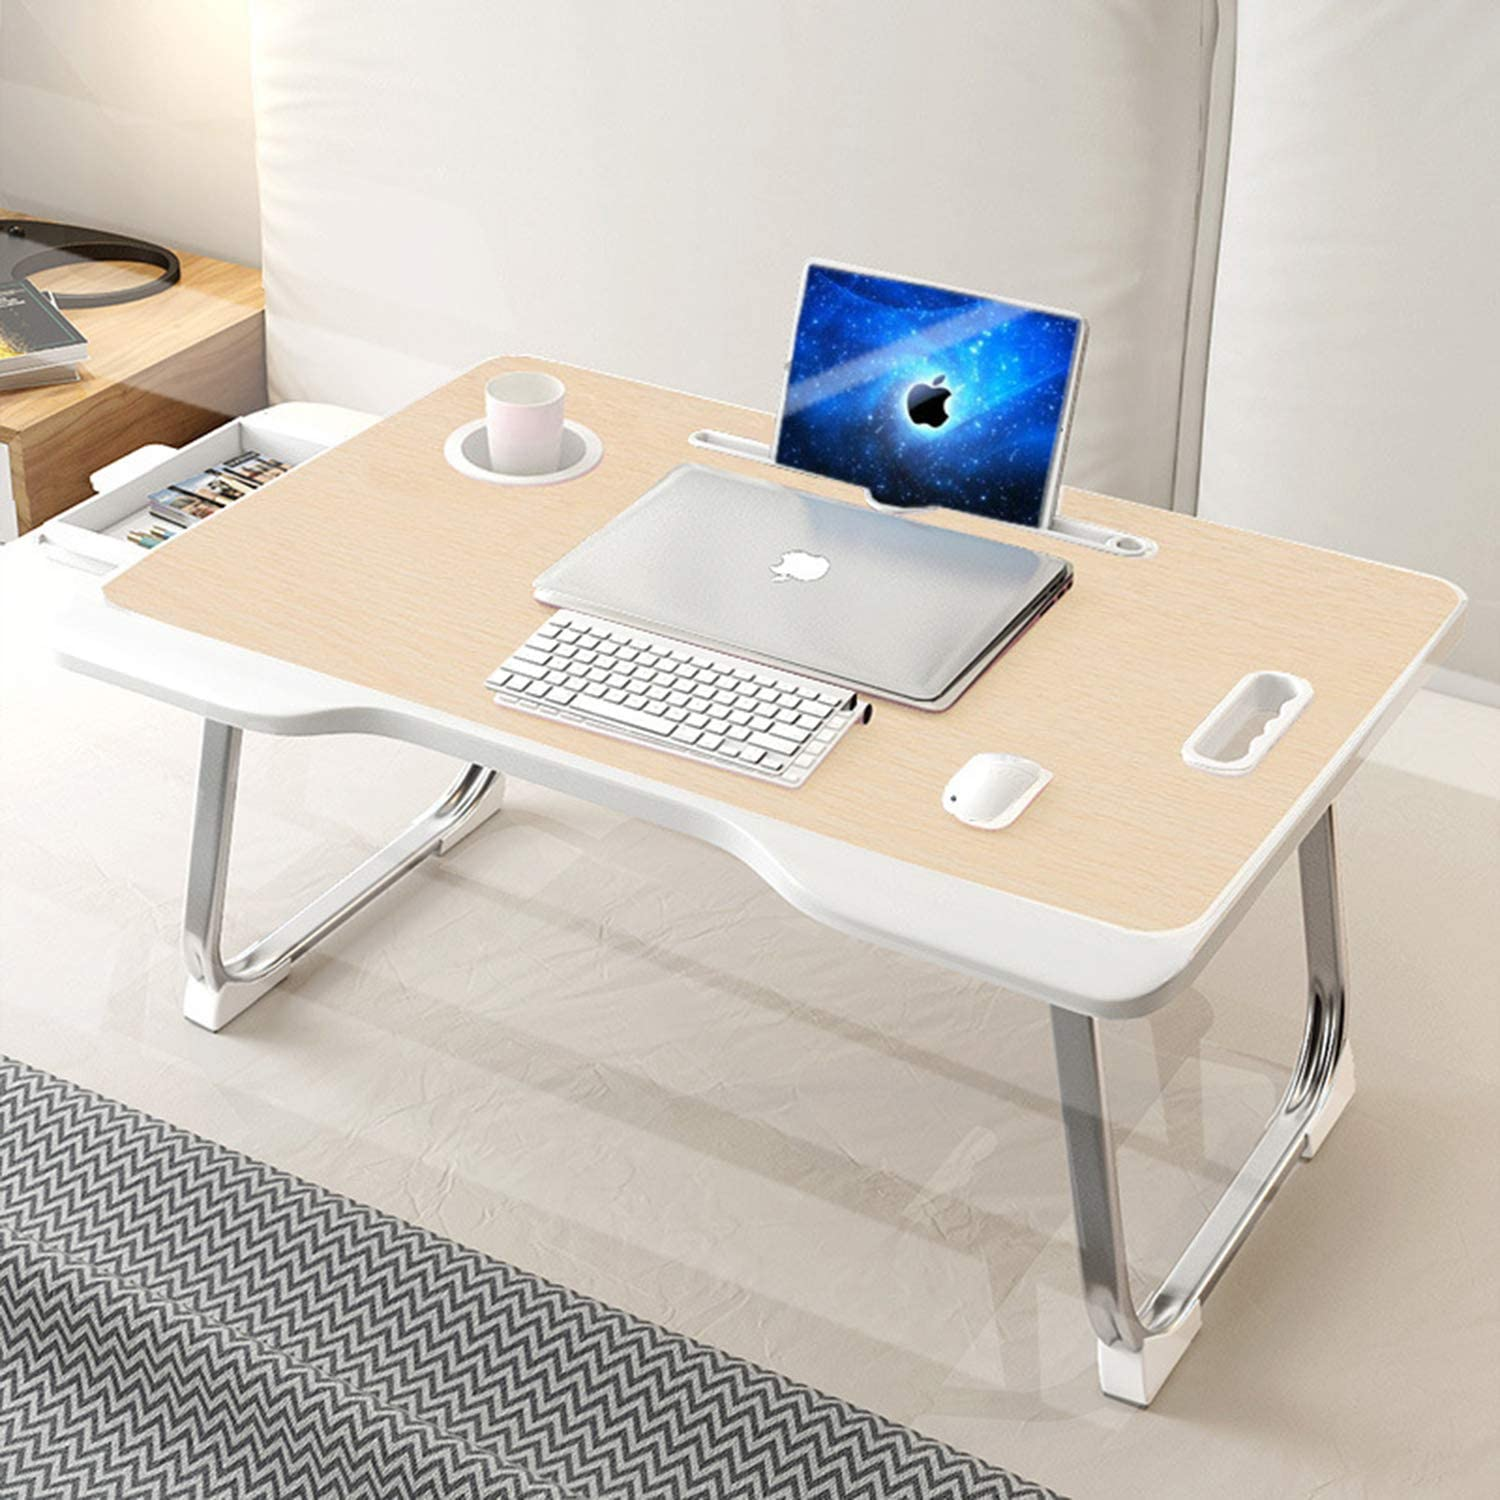 Laptop Desk with Drawer, Astory Portable Laptop Bed Tray Table Notebook Stand Reading Holder Built in Convenient Handle & Foldable Legs & Cup Slot for Bed/Sofa/Couch/Floor (Beige)